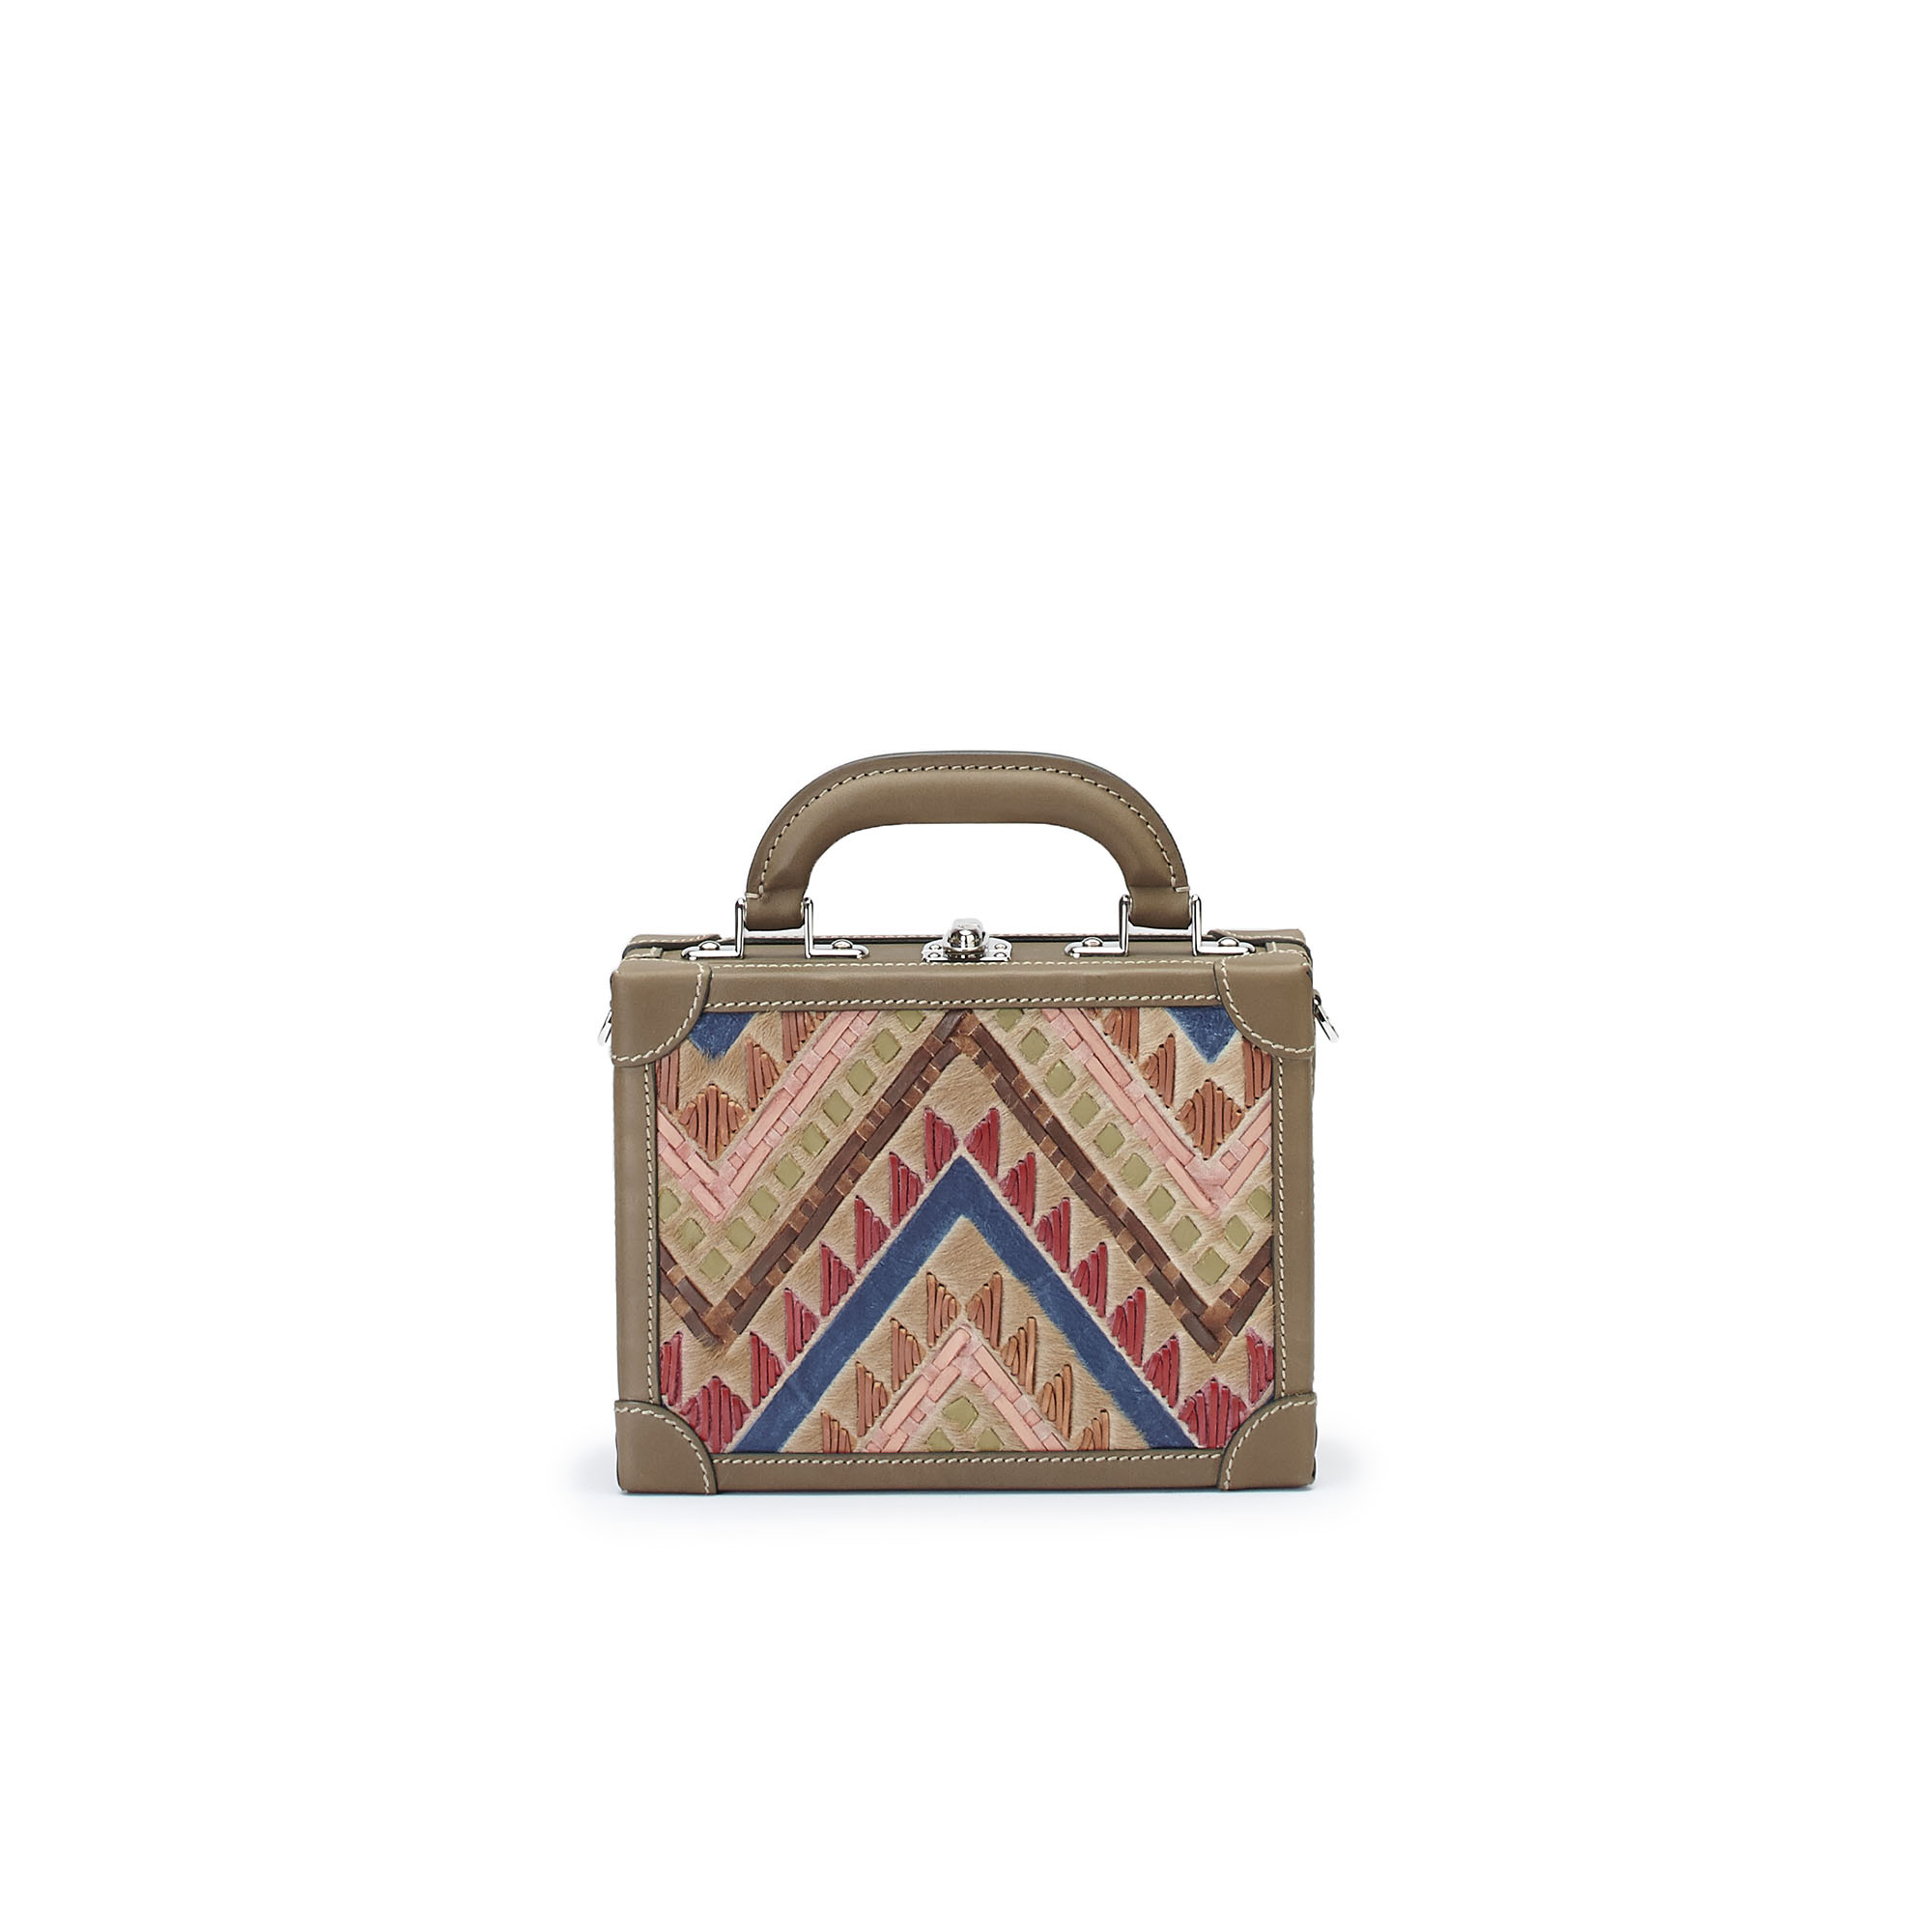 The multicolor haircalf woven Squared Bertoncina suitcase by Bertoni 1949 01